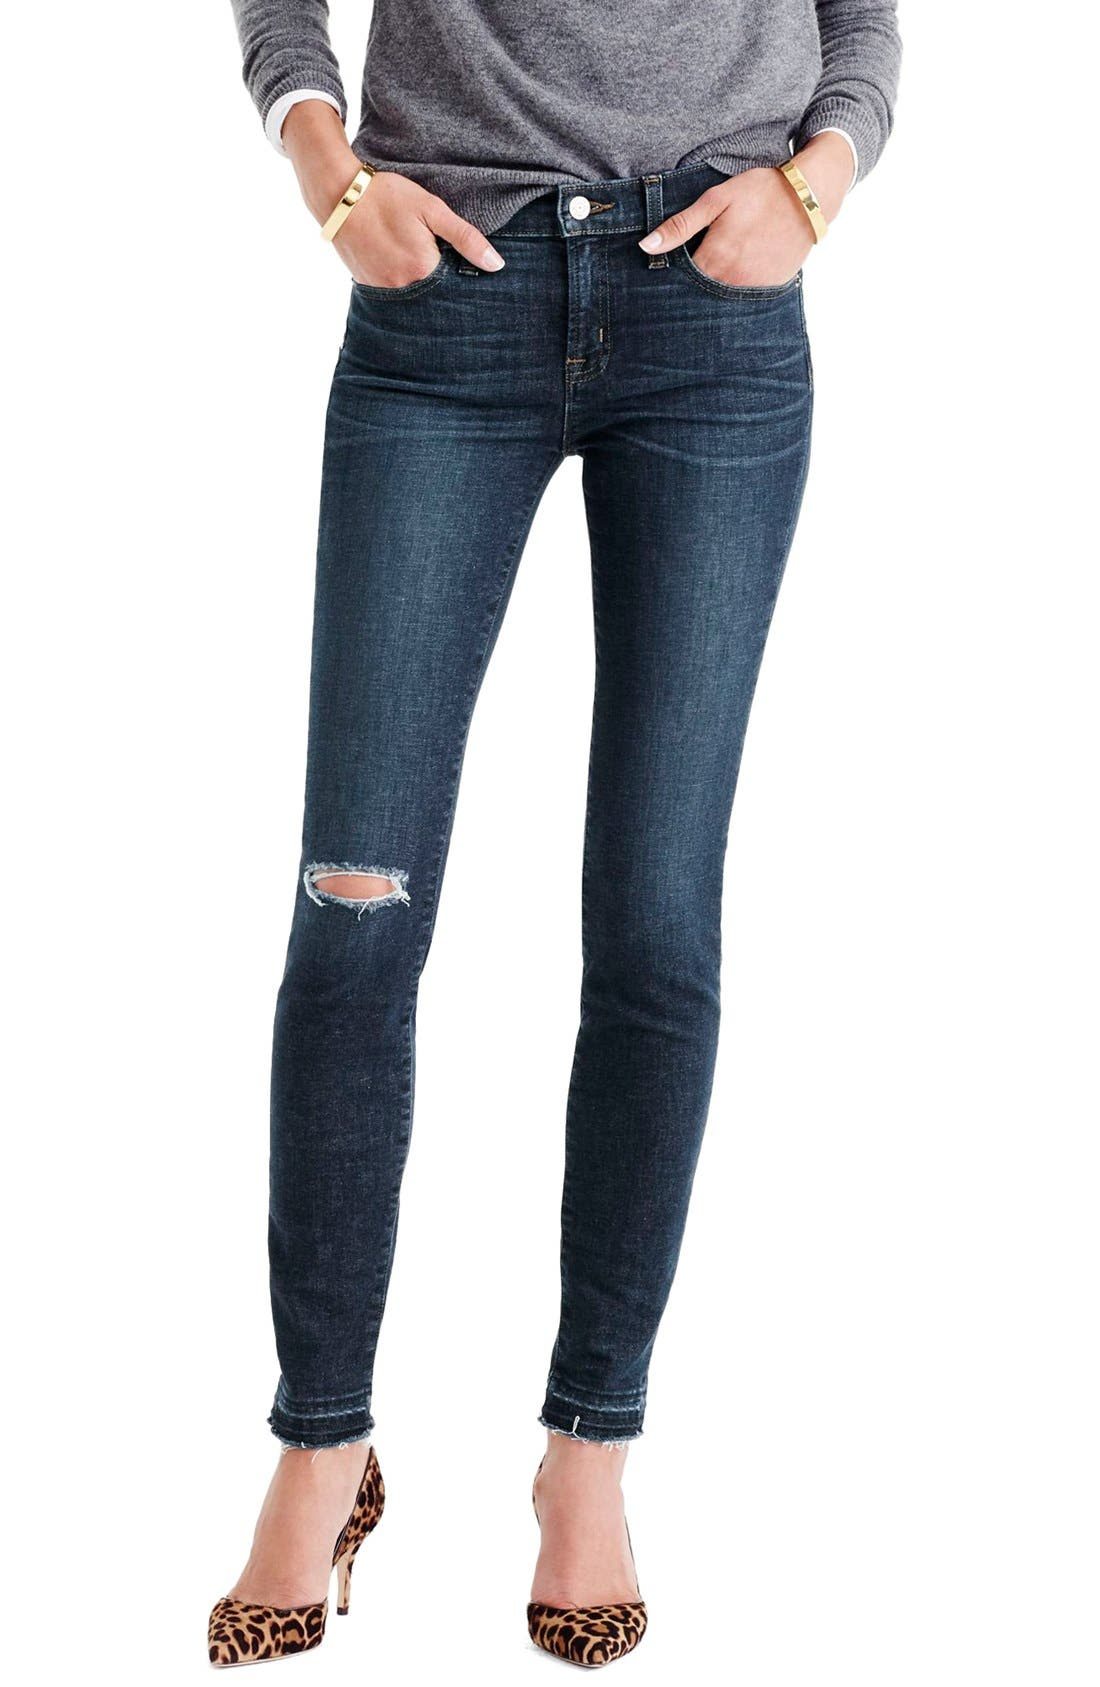 Alternate Image 1 Selected - J.Crew Toothpick Jeans (Point Lake) (Regular and Petite)